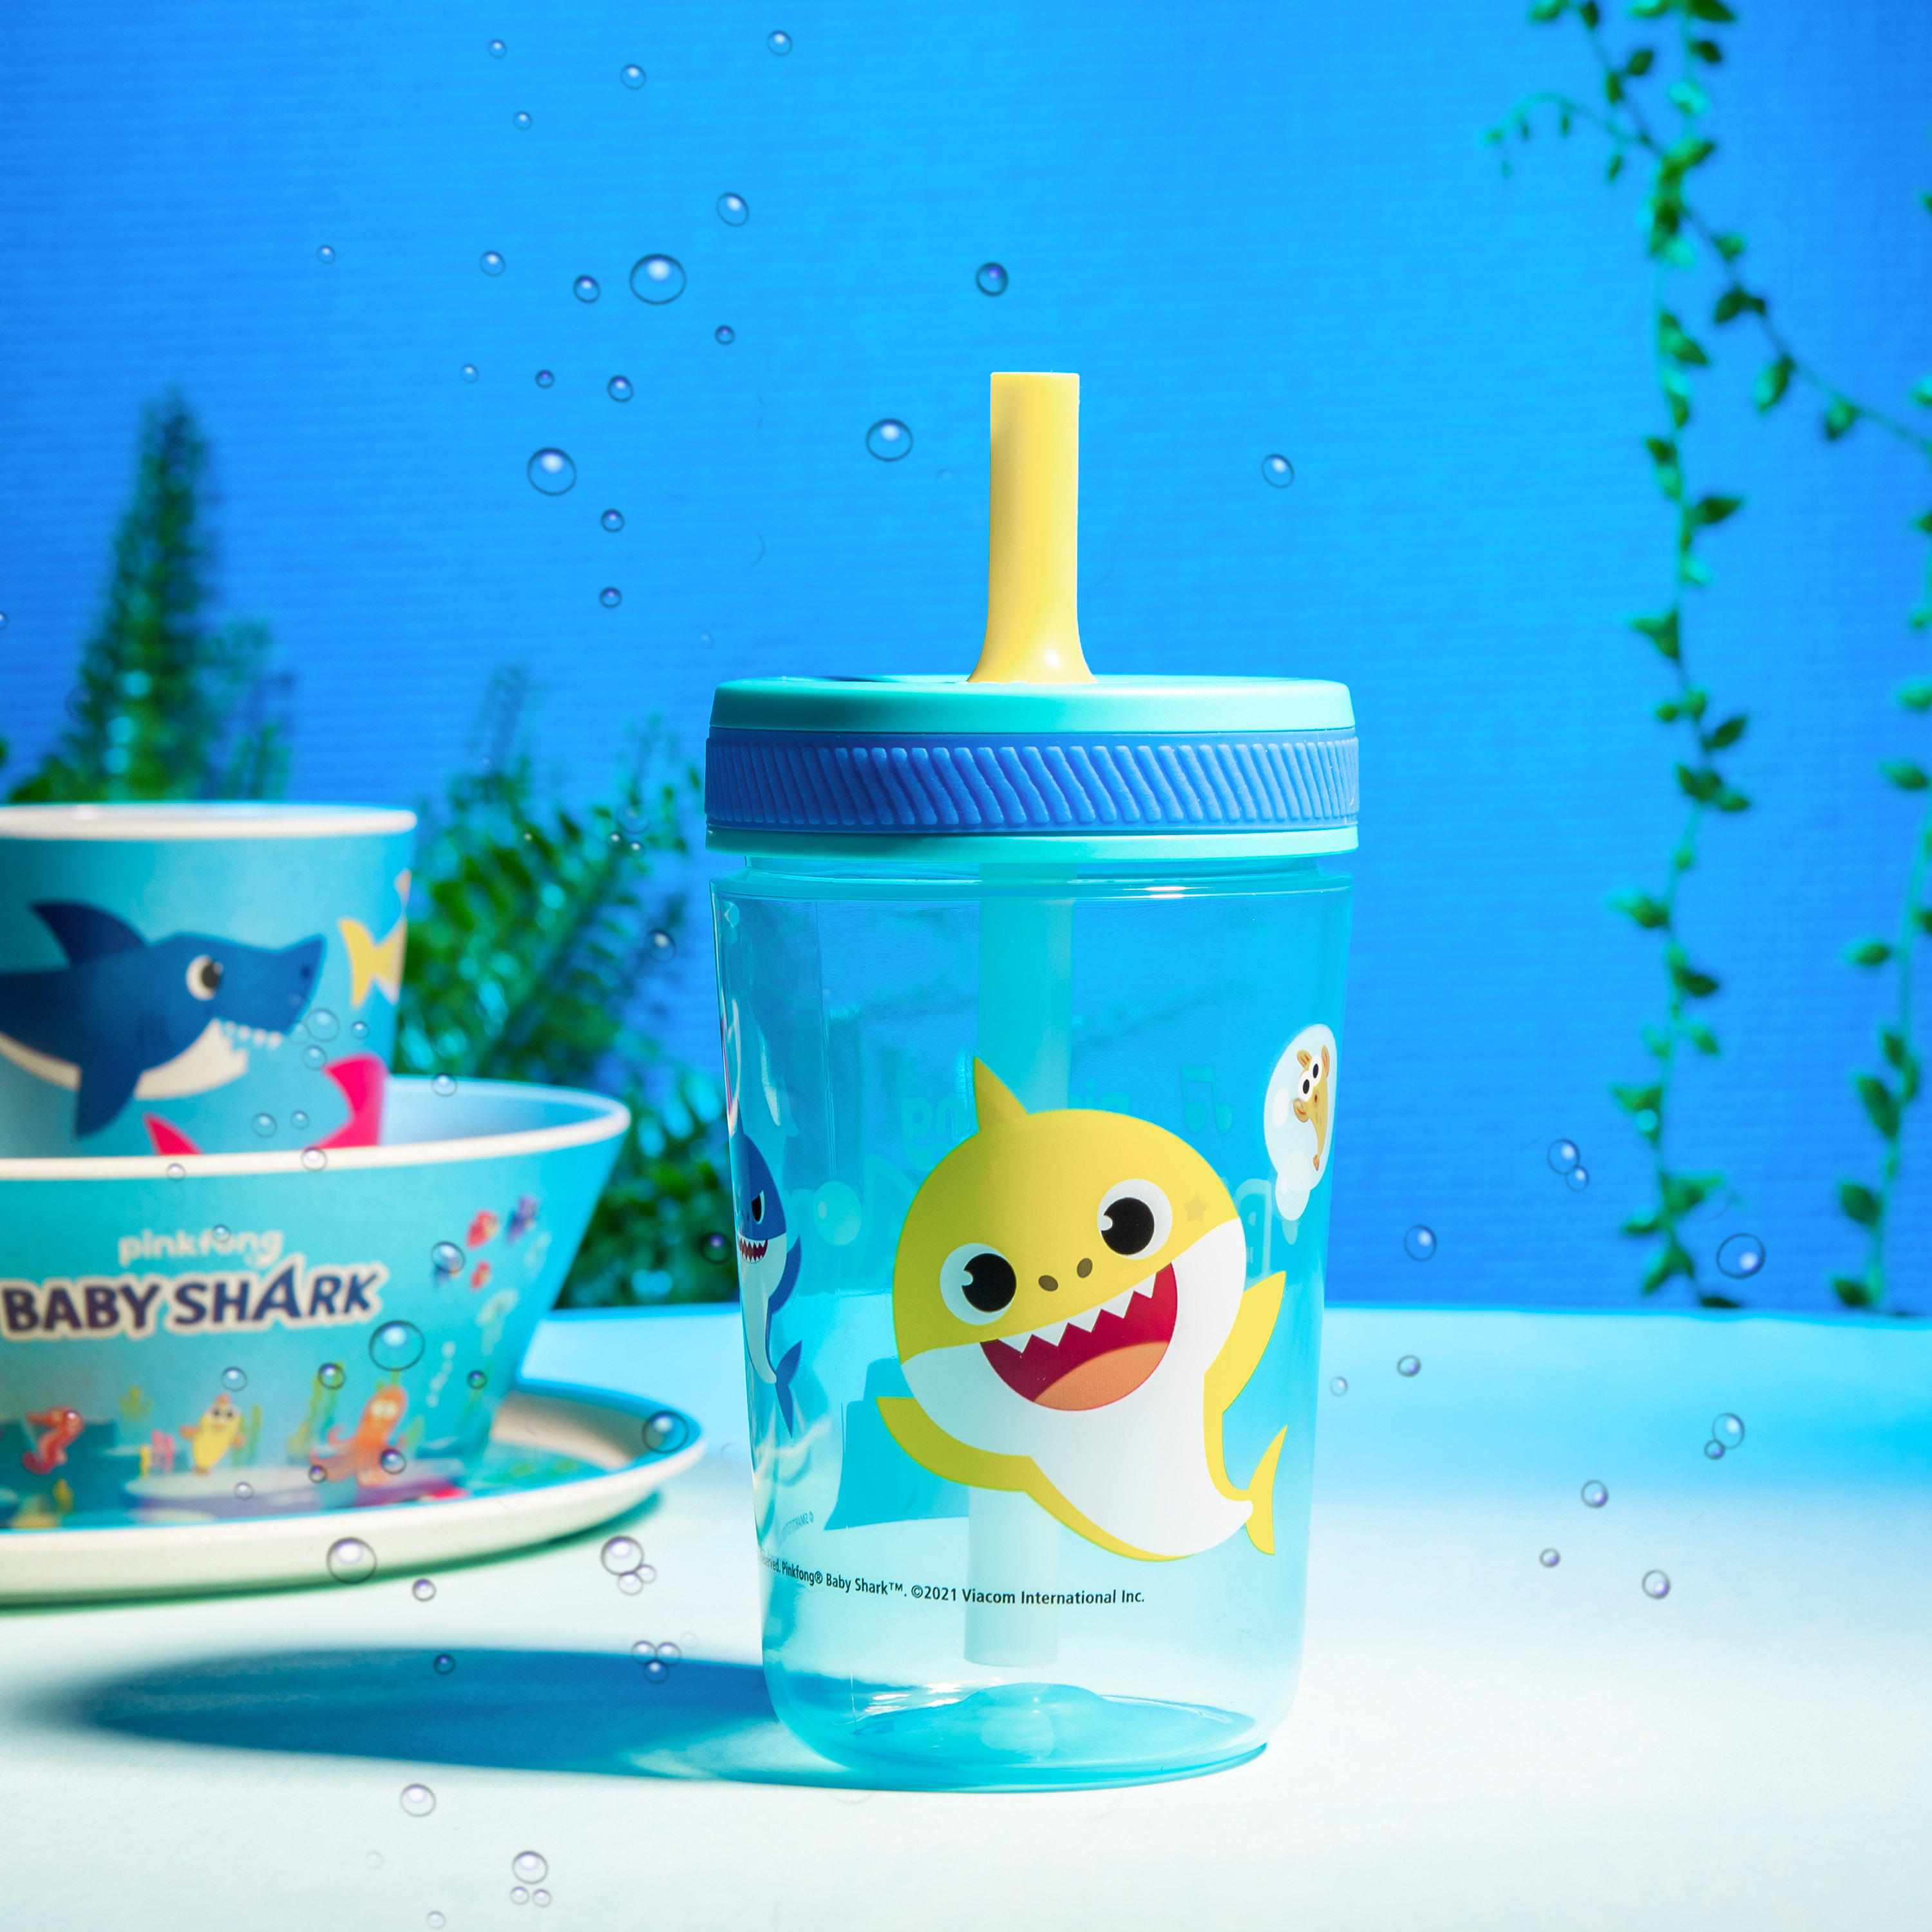 Pinkfong 15  ounce Plastic Tumbler with Lid and Straw, Baby Shark, 2-piece set slideshow image 3